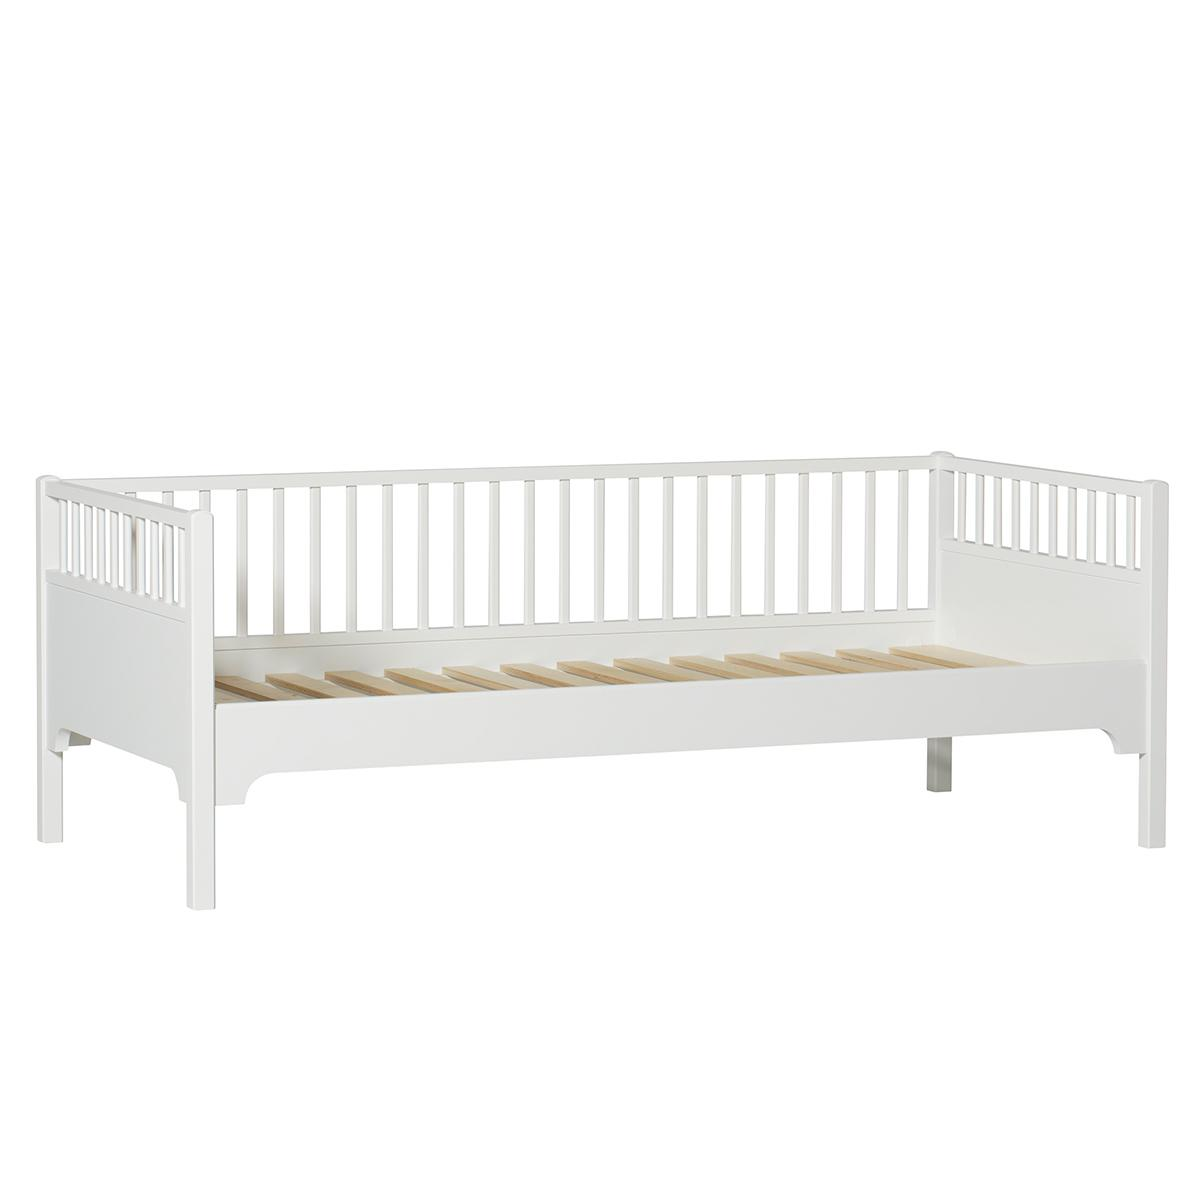 Lit banquette 90x200 cm SEASIDE CLASSIC Oliver Furniture blanc